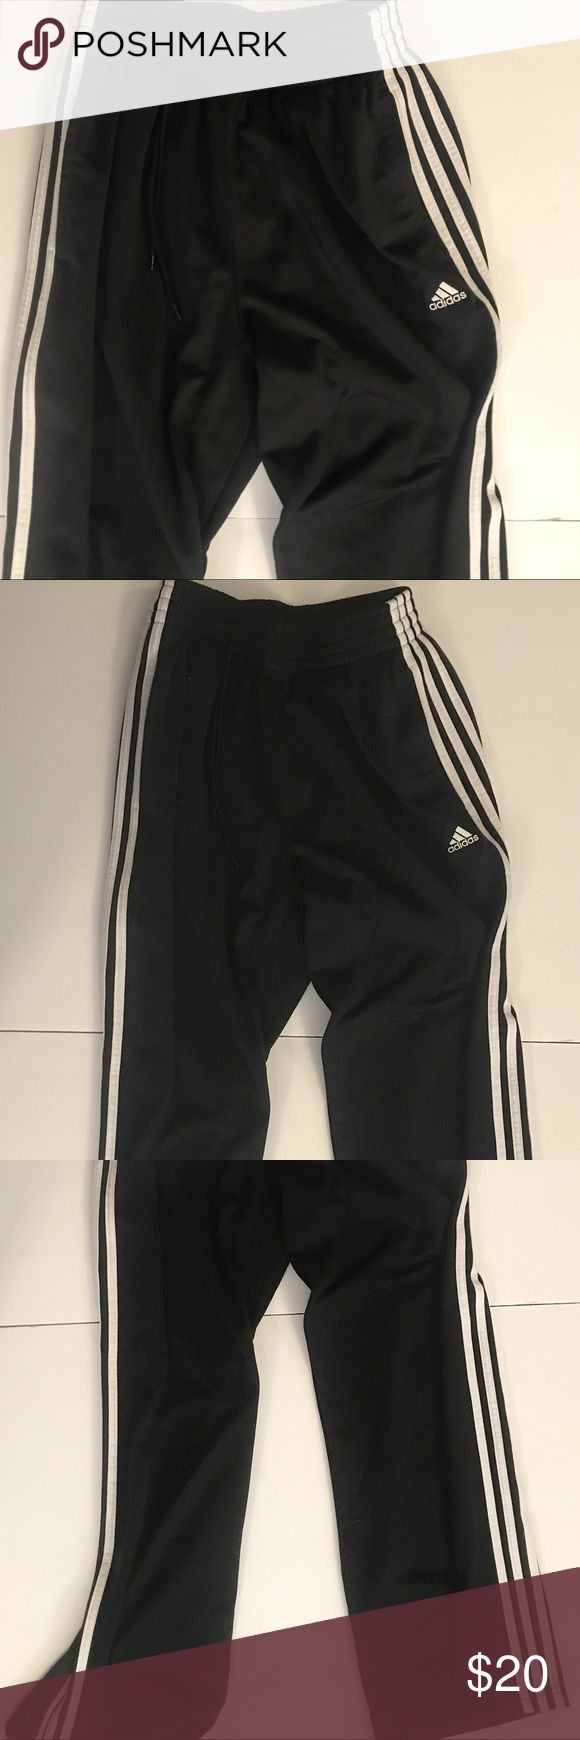 Adidas Superstar Classic Three Stripe Track Pants Adidas Superstar Classic Three Stripe Track Pants black and white vintage style size small. No stains or frays near perfect condition. Make an offer! adidas Pants Track Pants & Joggers